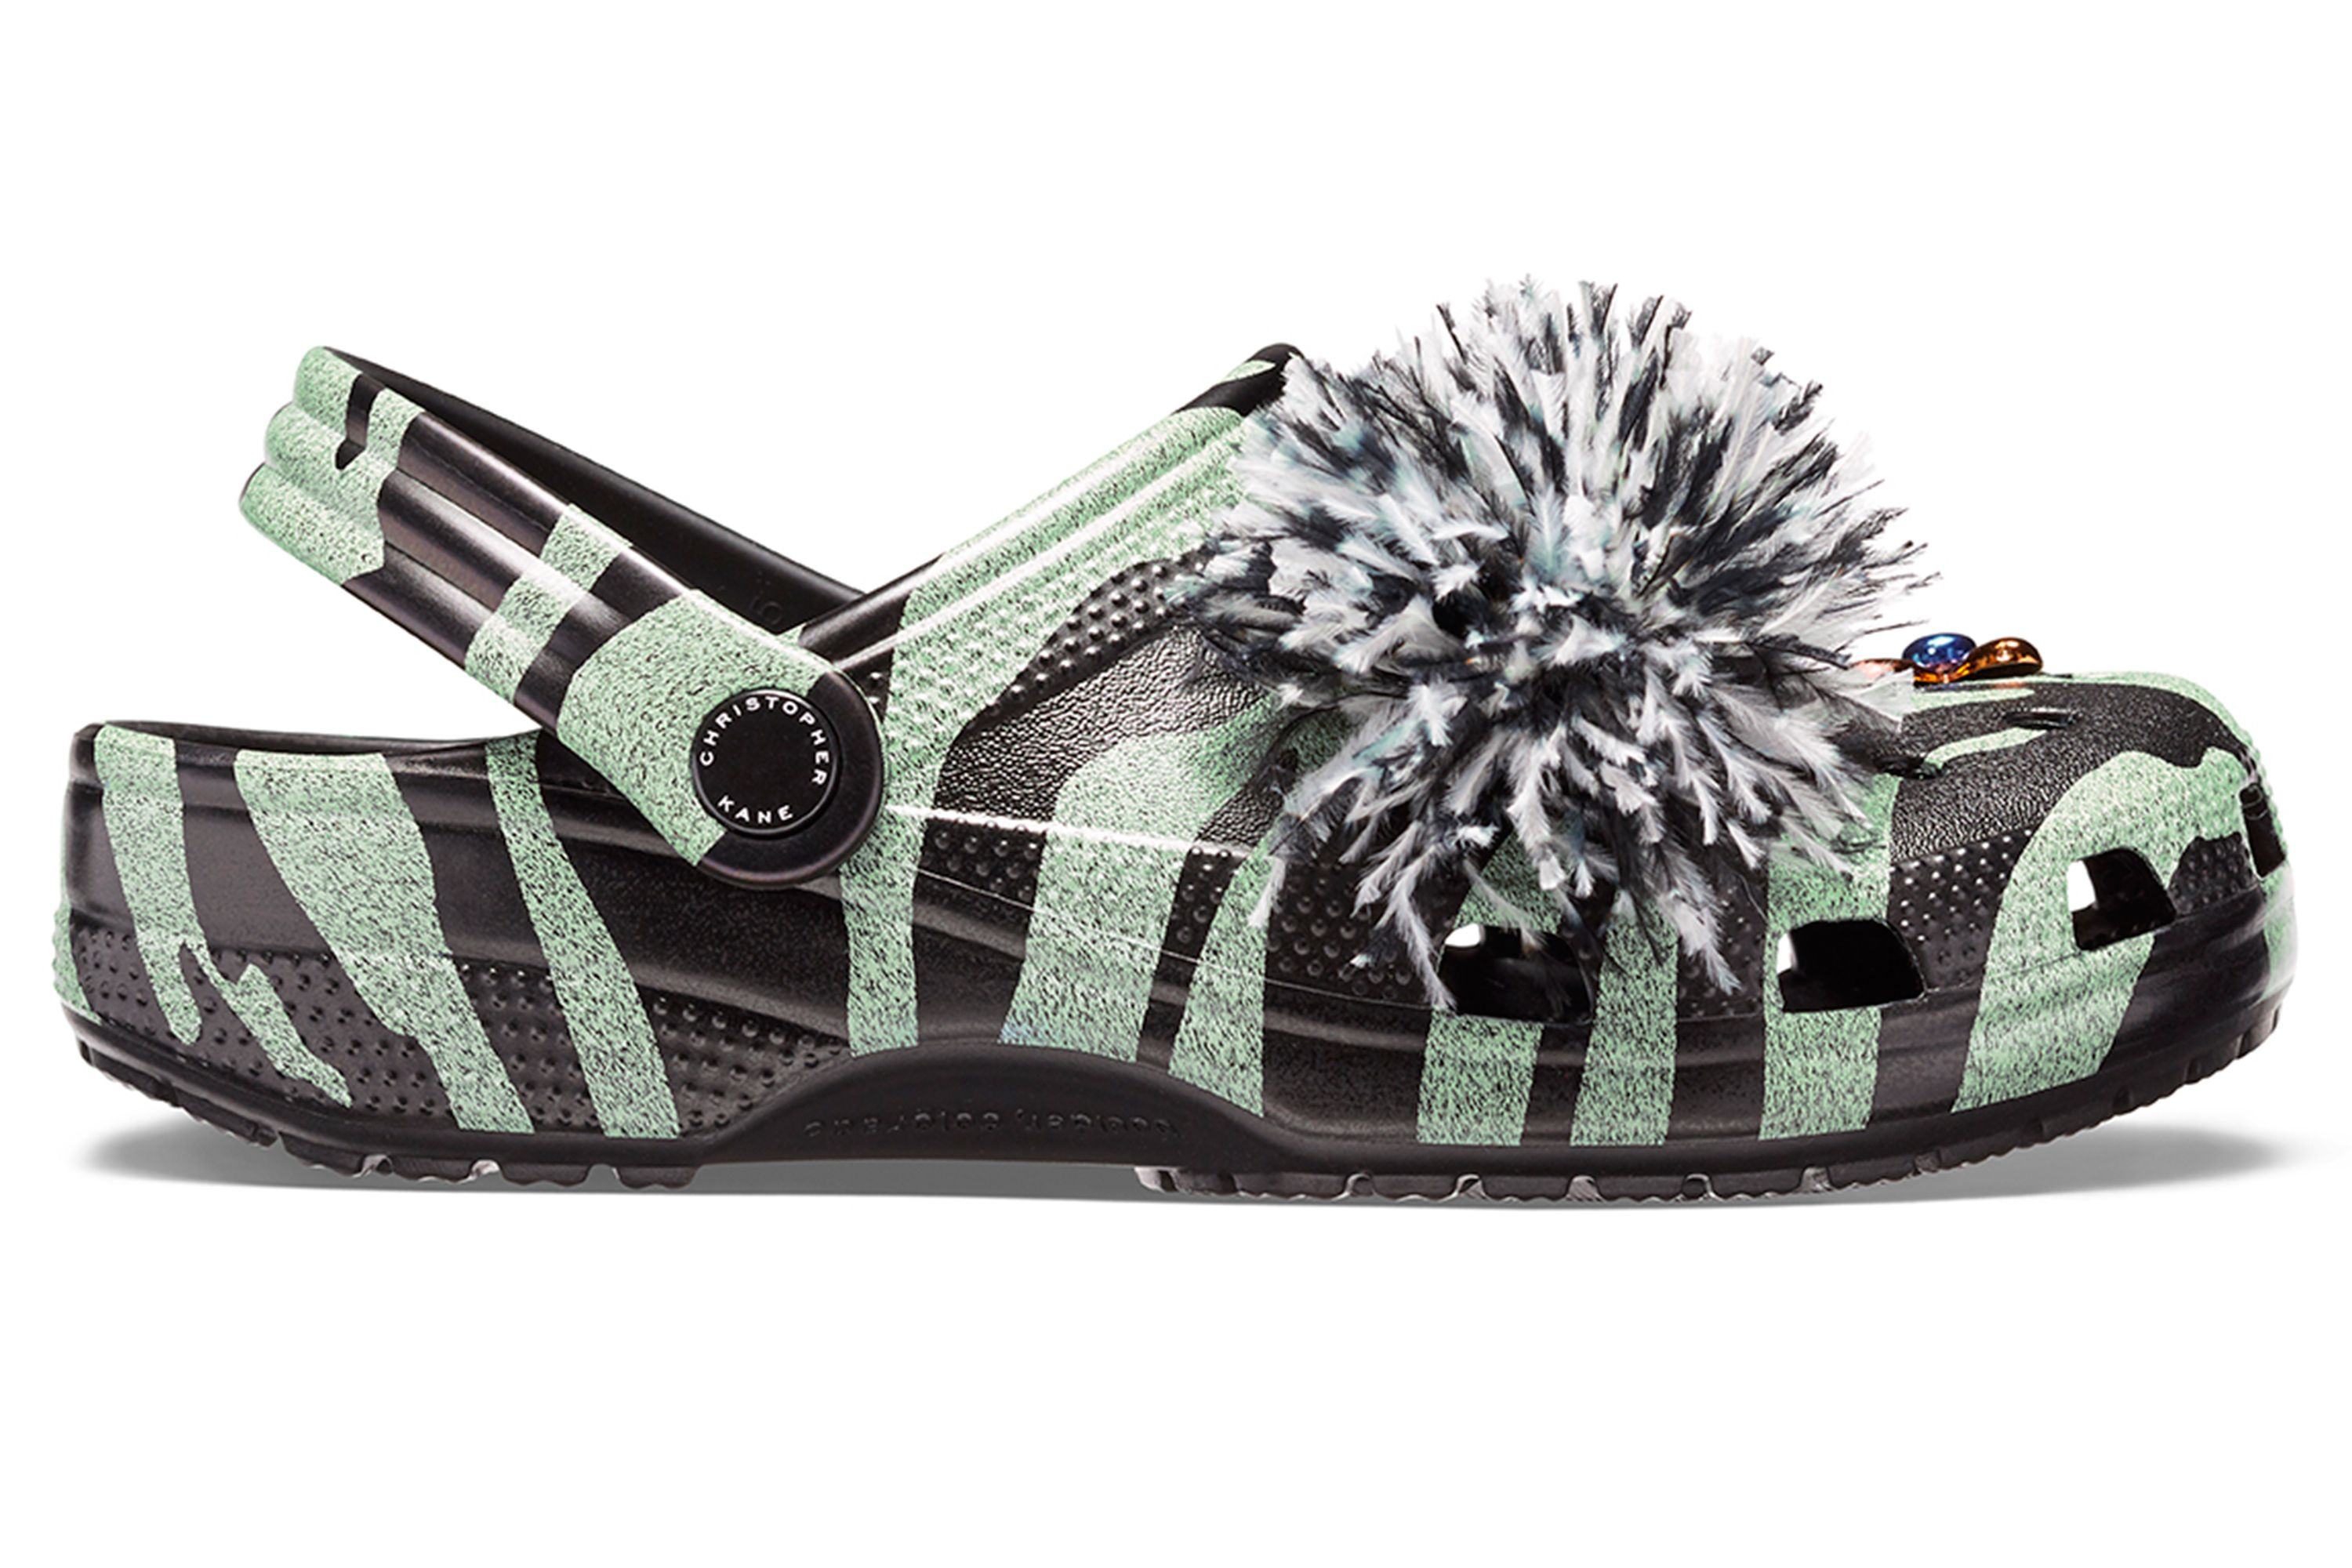 Christopher Kane continues with crocs quest